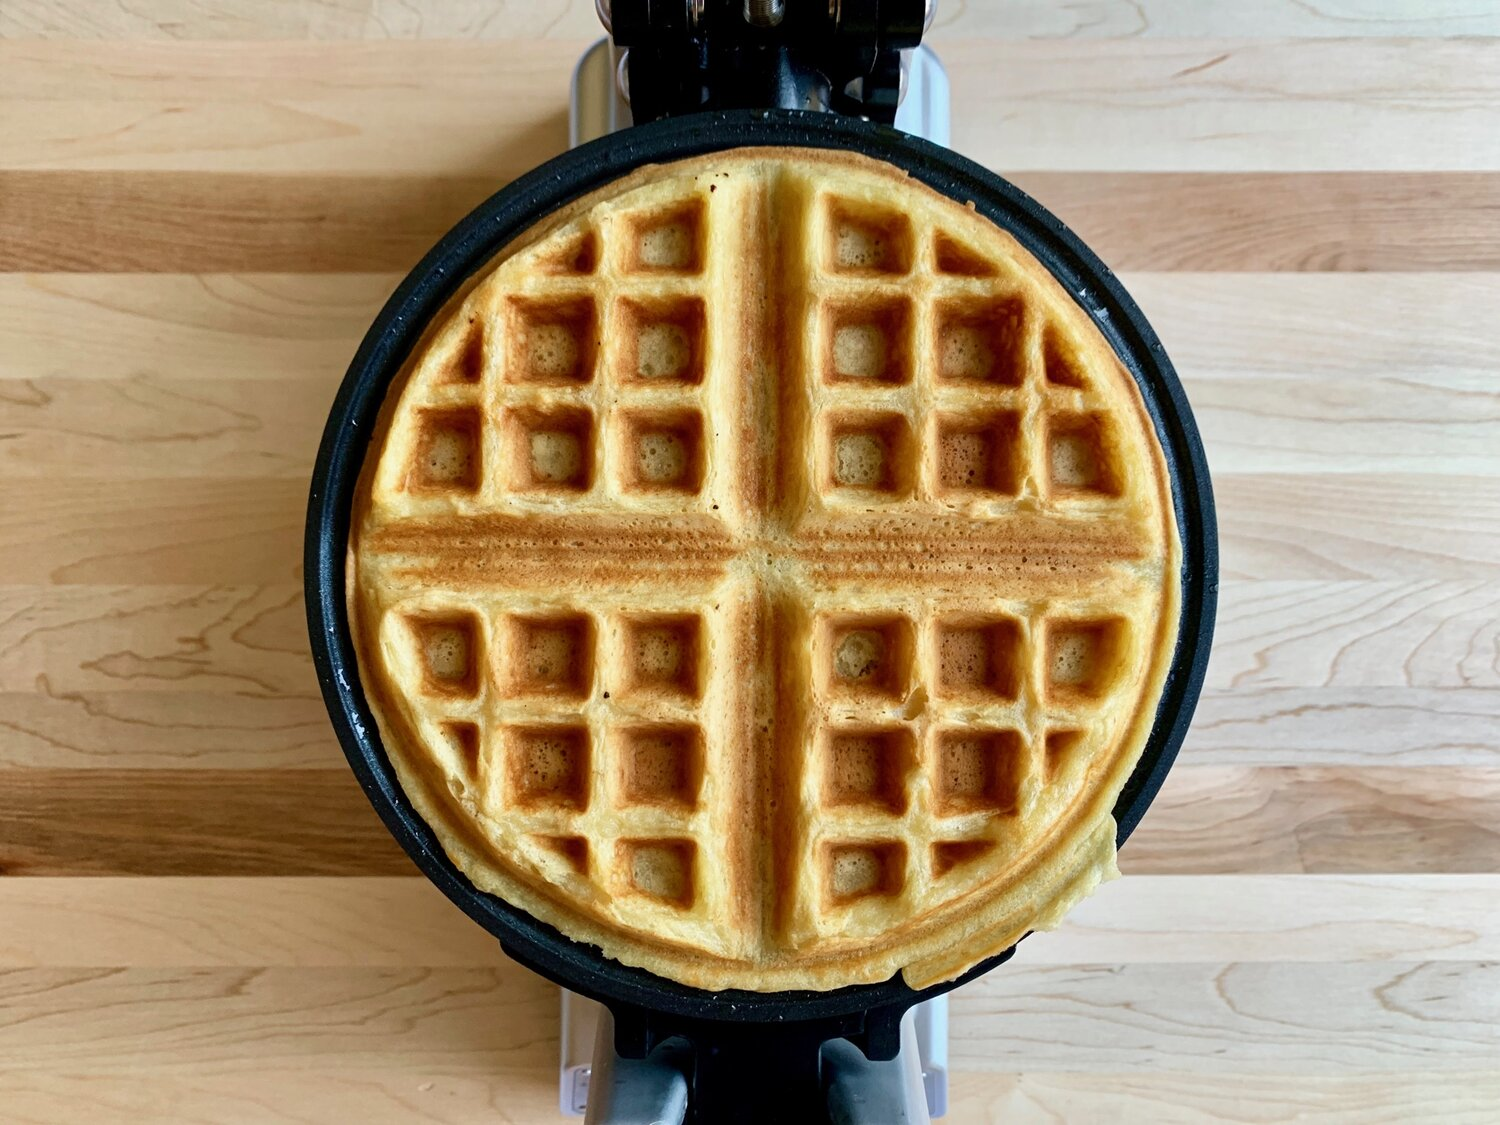 6. Cook waffles according to manufacturer's instructions, approximately 2-3 minutes. Serve with fresh berries and cream or maple syrup. -